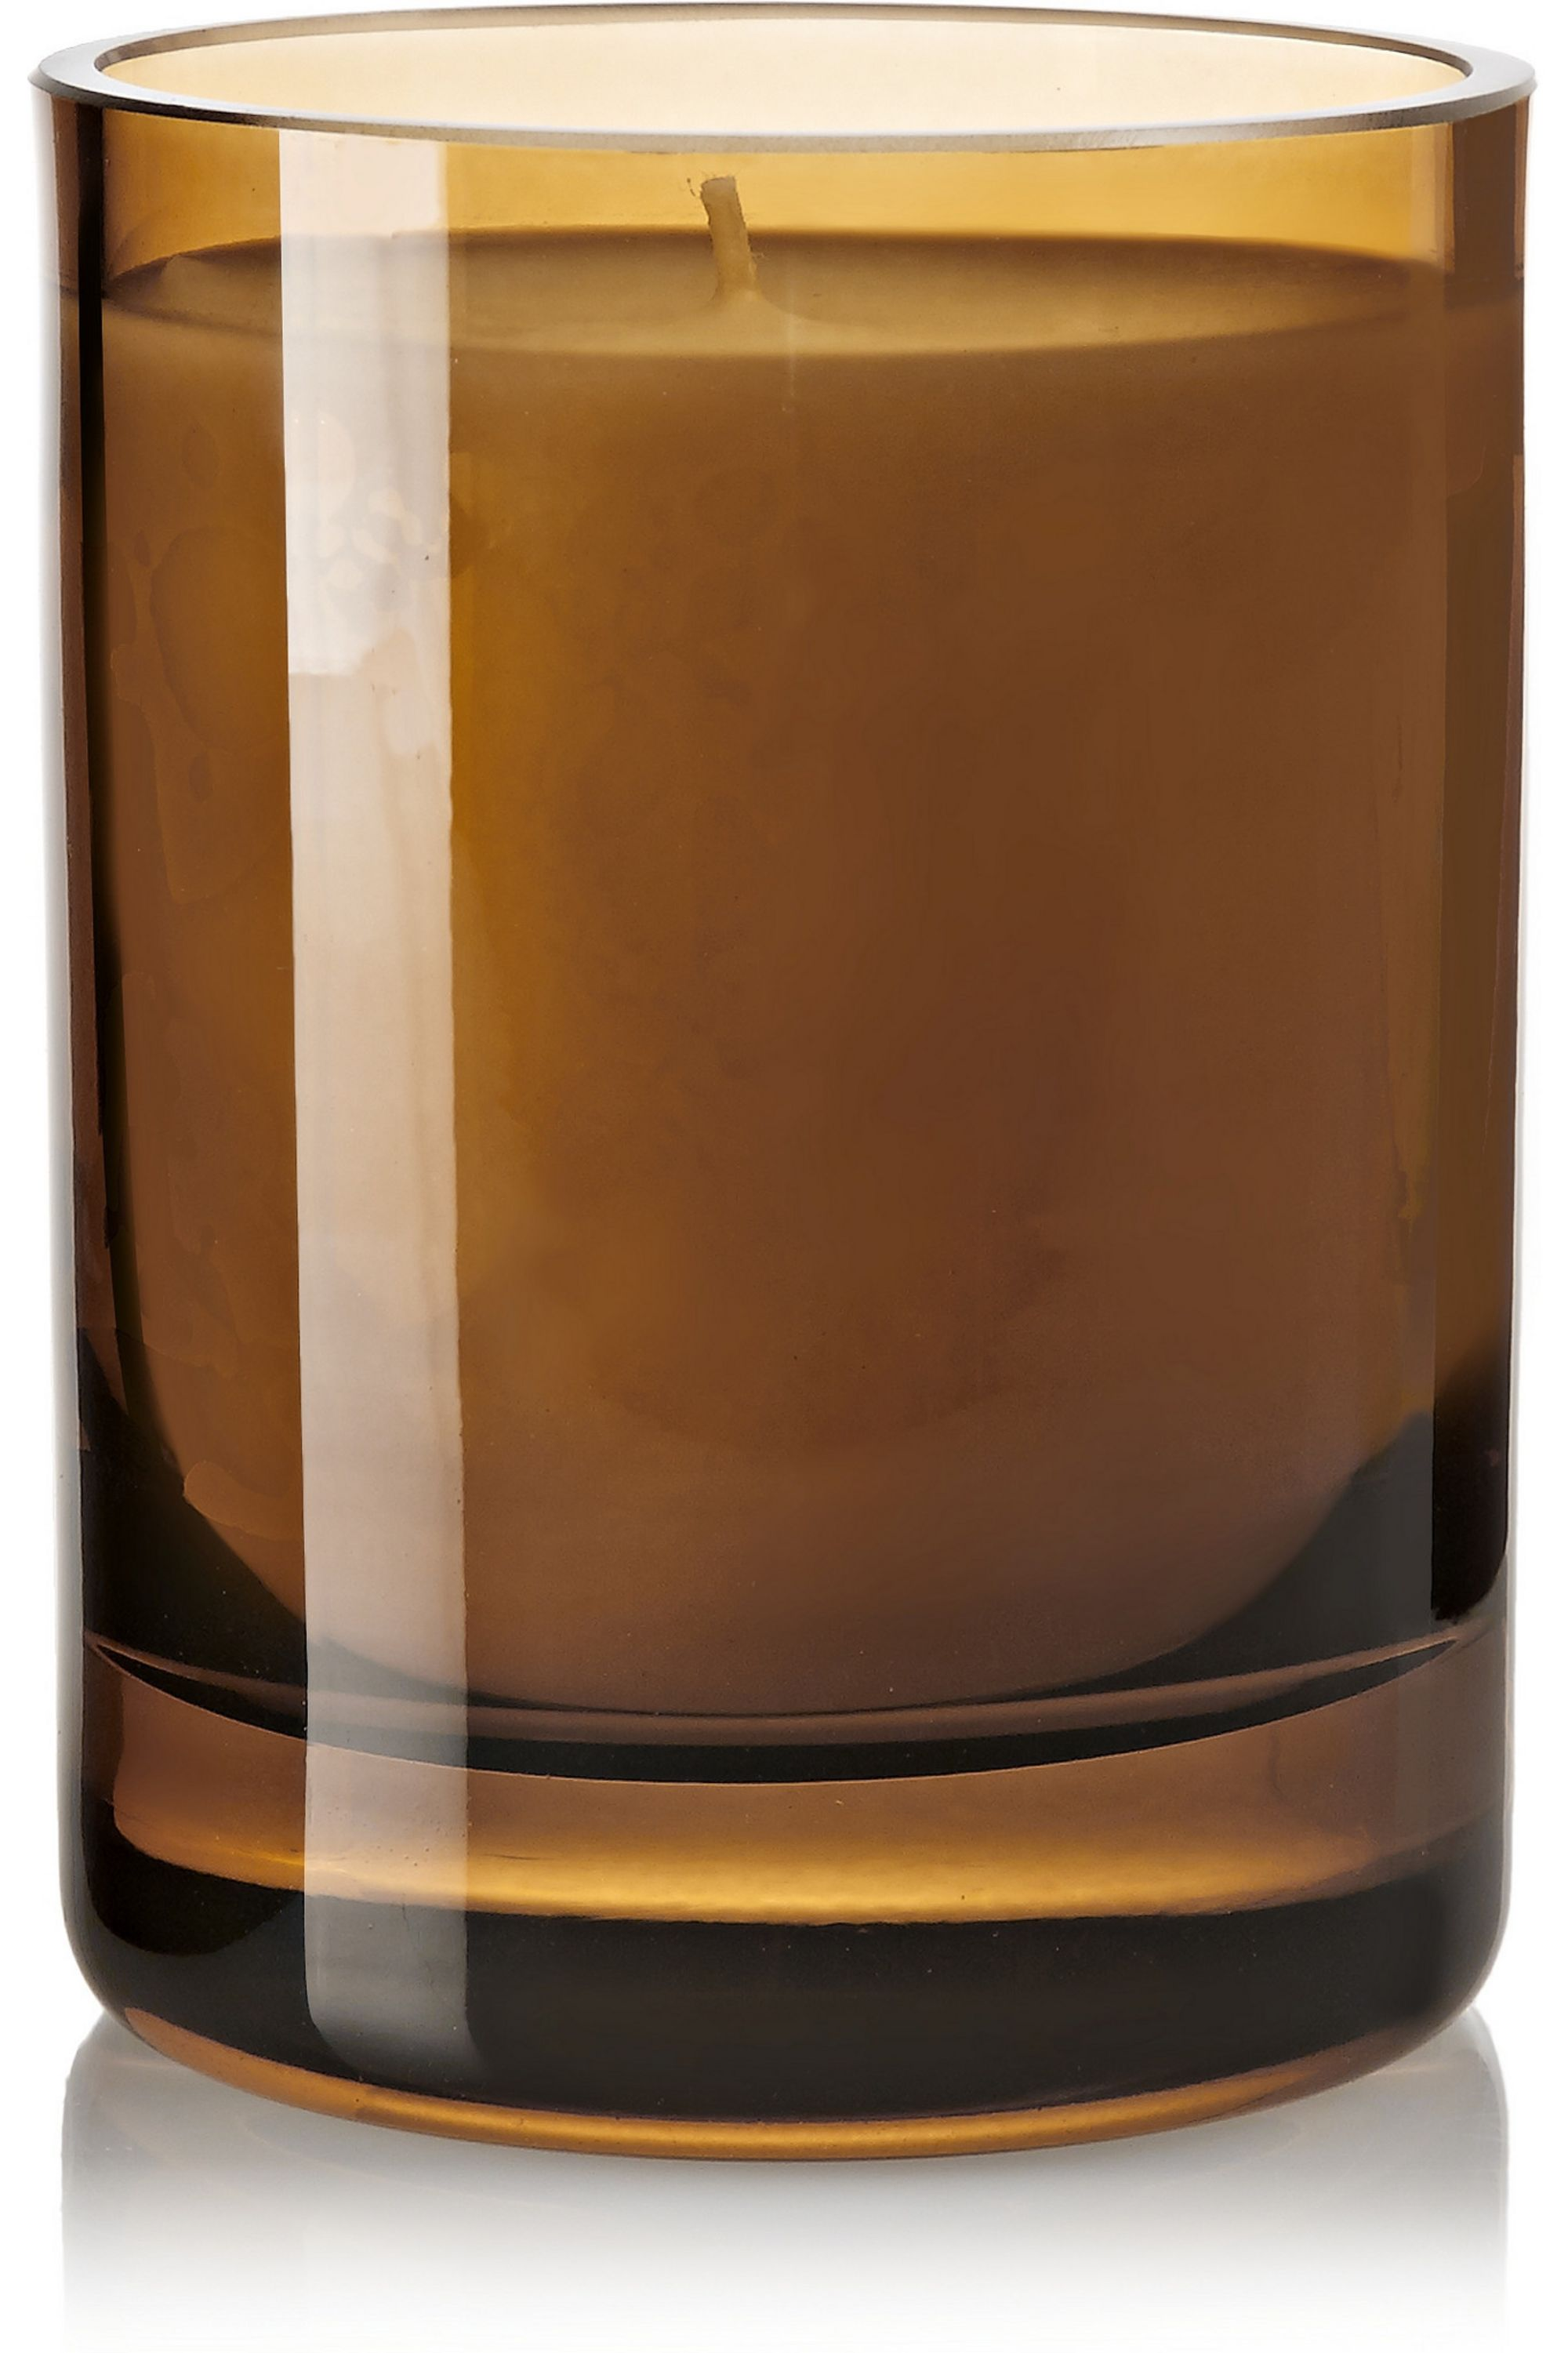 Byredo Safran scented candle, 240g